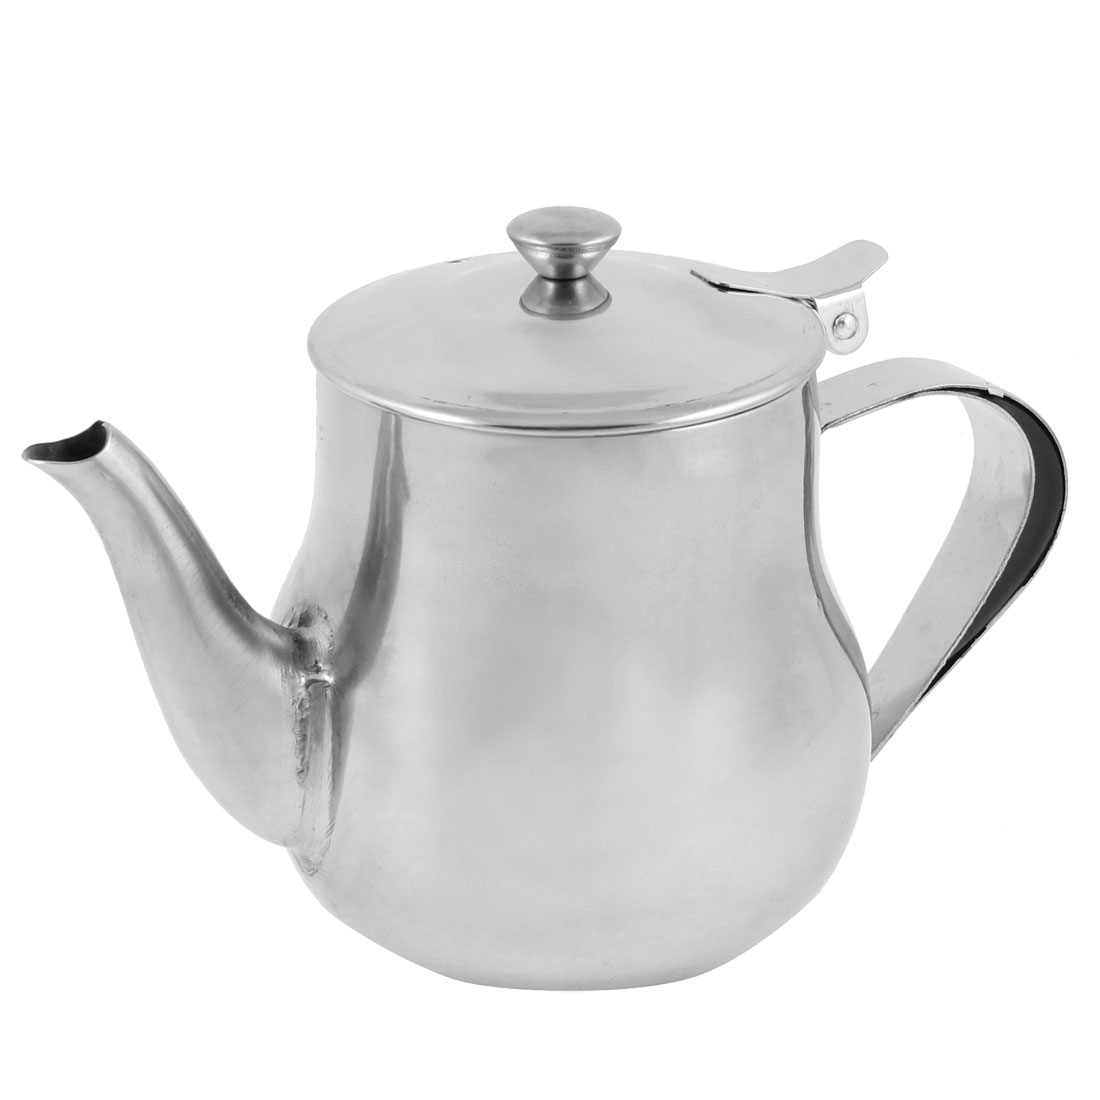 130Z Capacity Pitcher Shaped Tea Kettle Teakettle Silver Tone